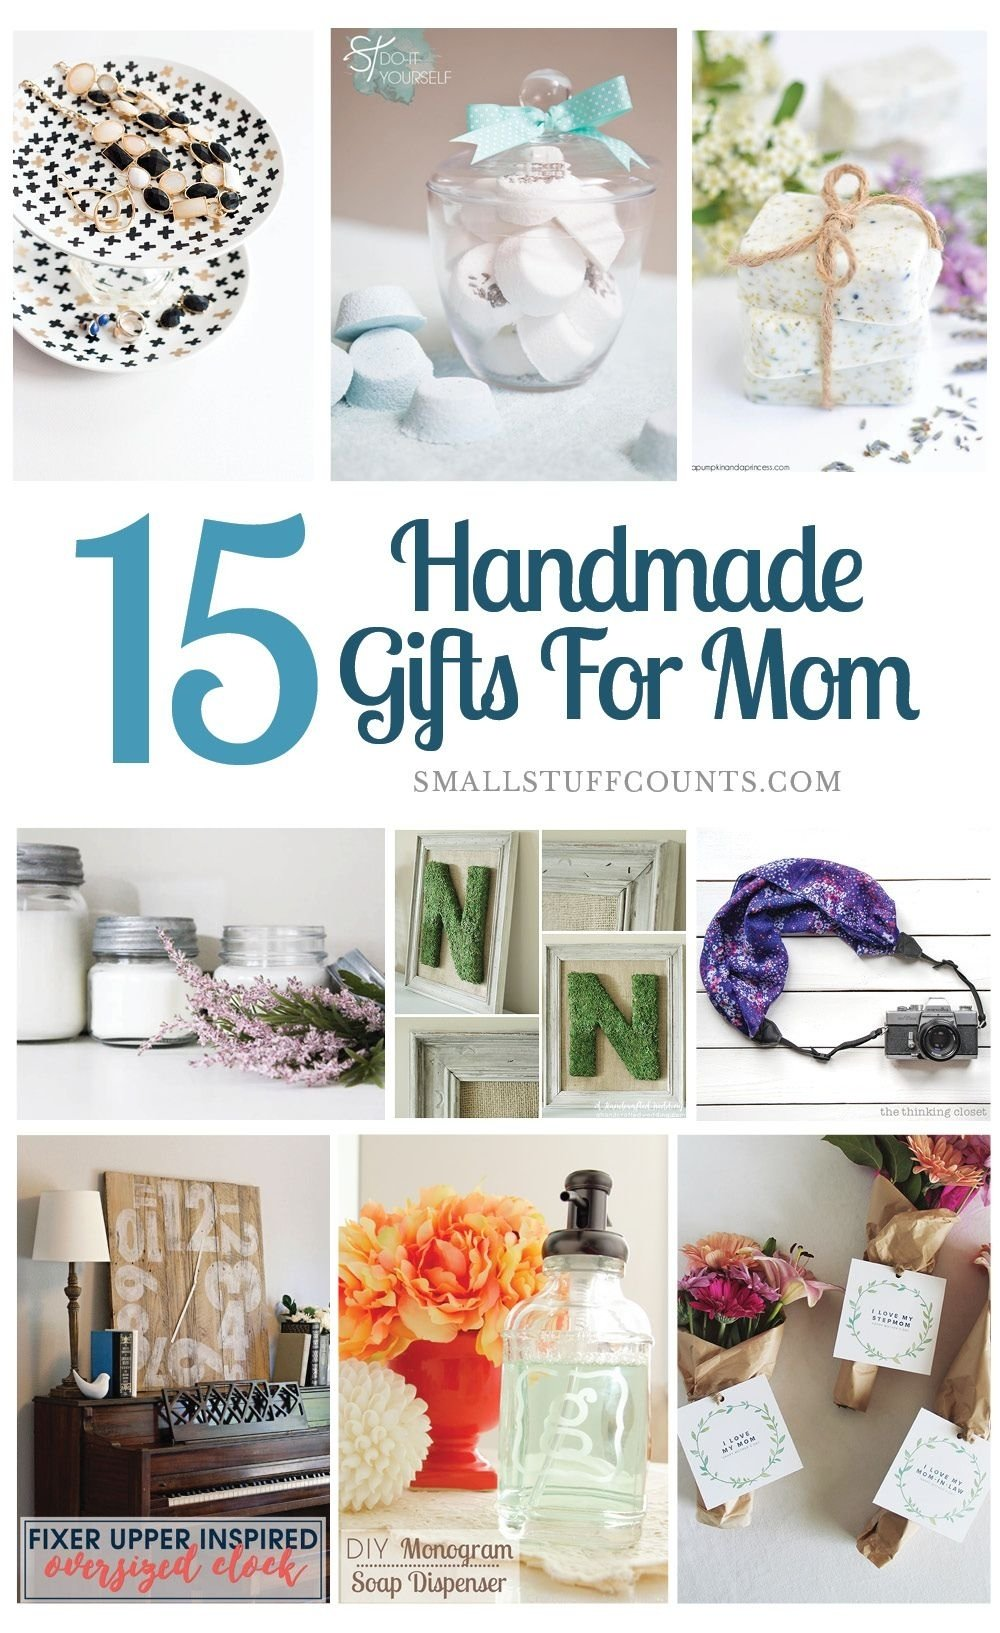 10 Pretty Birthday Present Ideas For Mom beautiful diy gift ideas for mom gift 29 2020